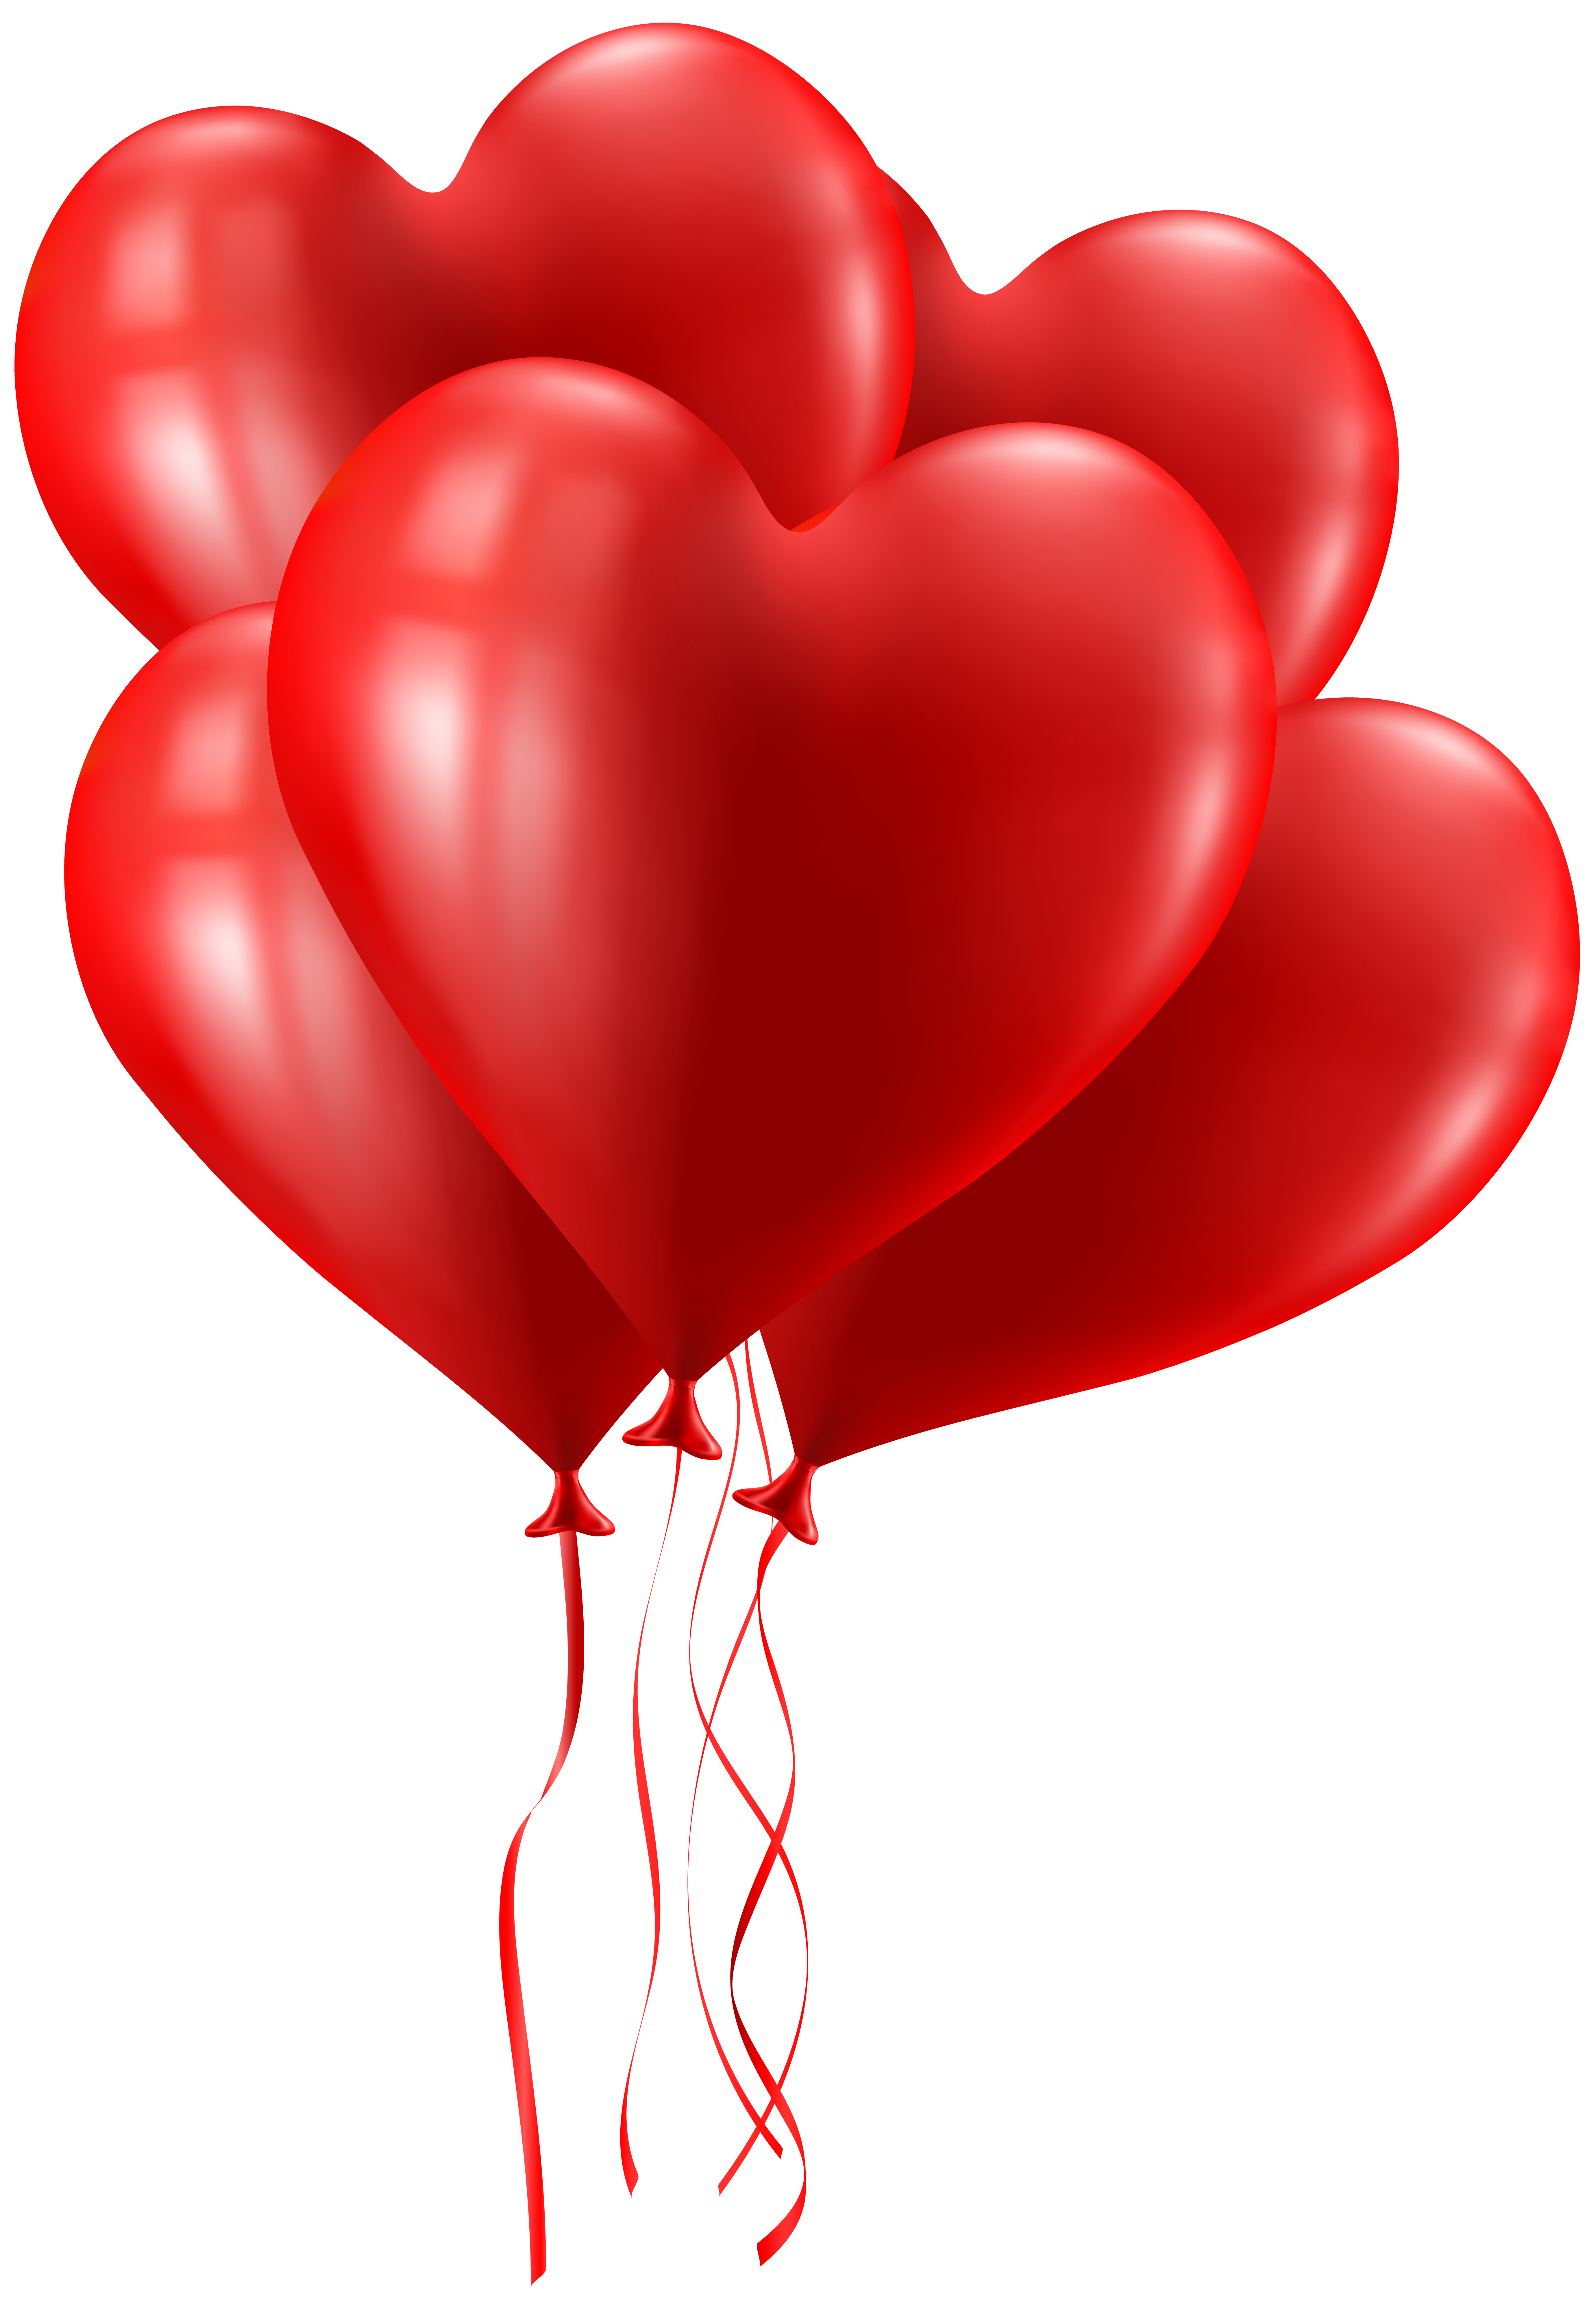 Valentine\'s Day Heart Balloons Clip Art Image.